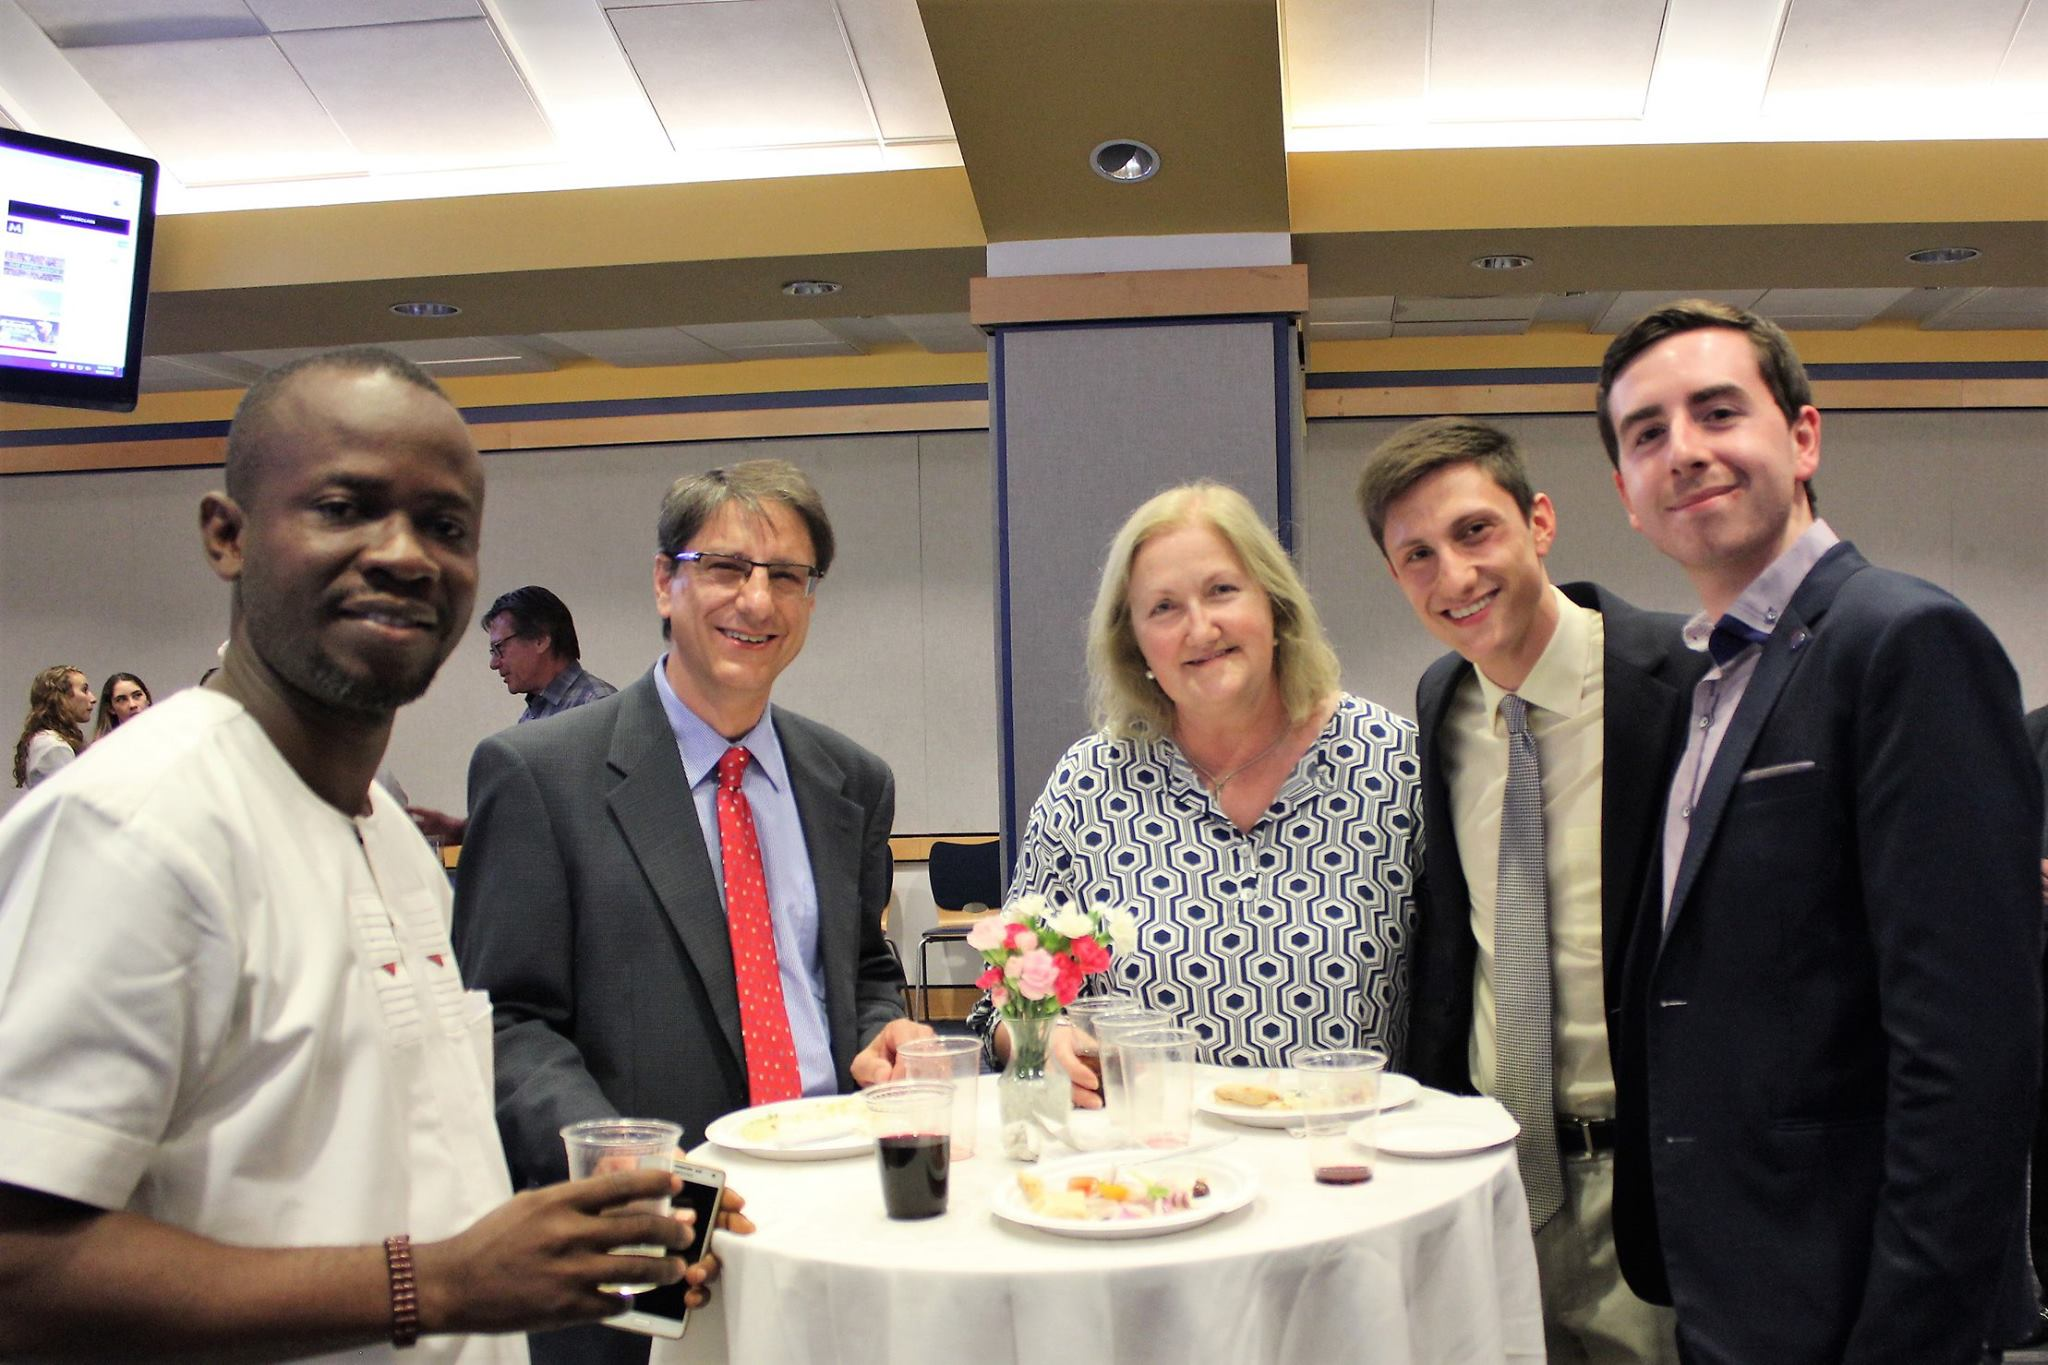 From left to right: Anaeke Chinonye, Mr. Damianos, Fran Damianos, Nicholas Damianos, Rory O'Connor